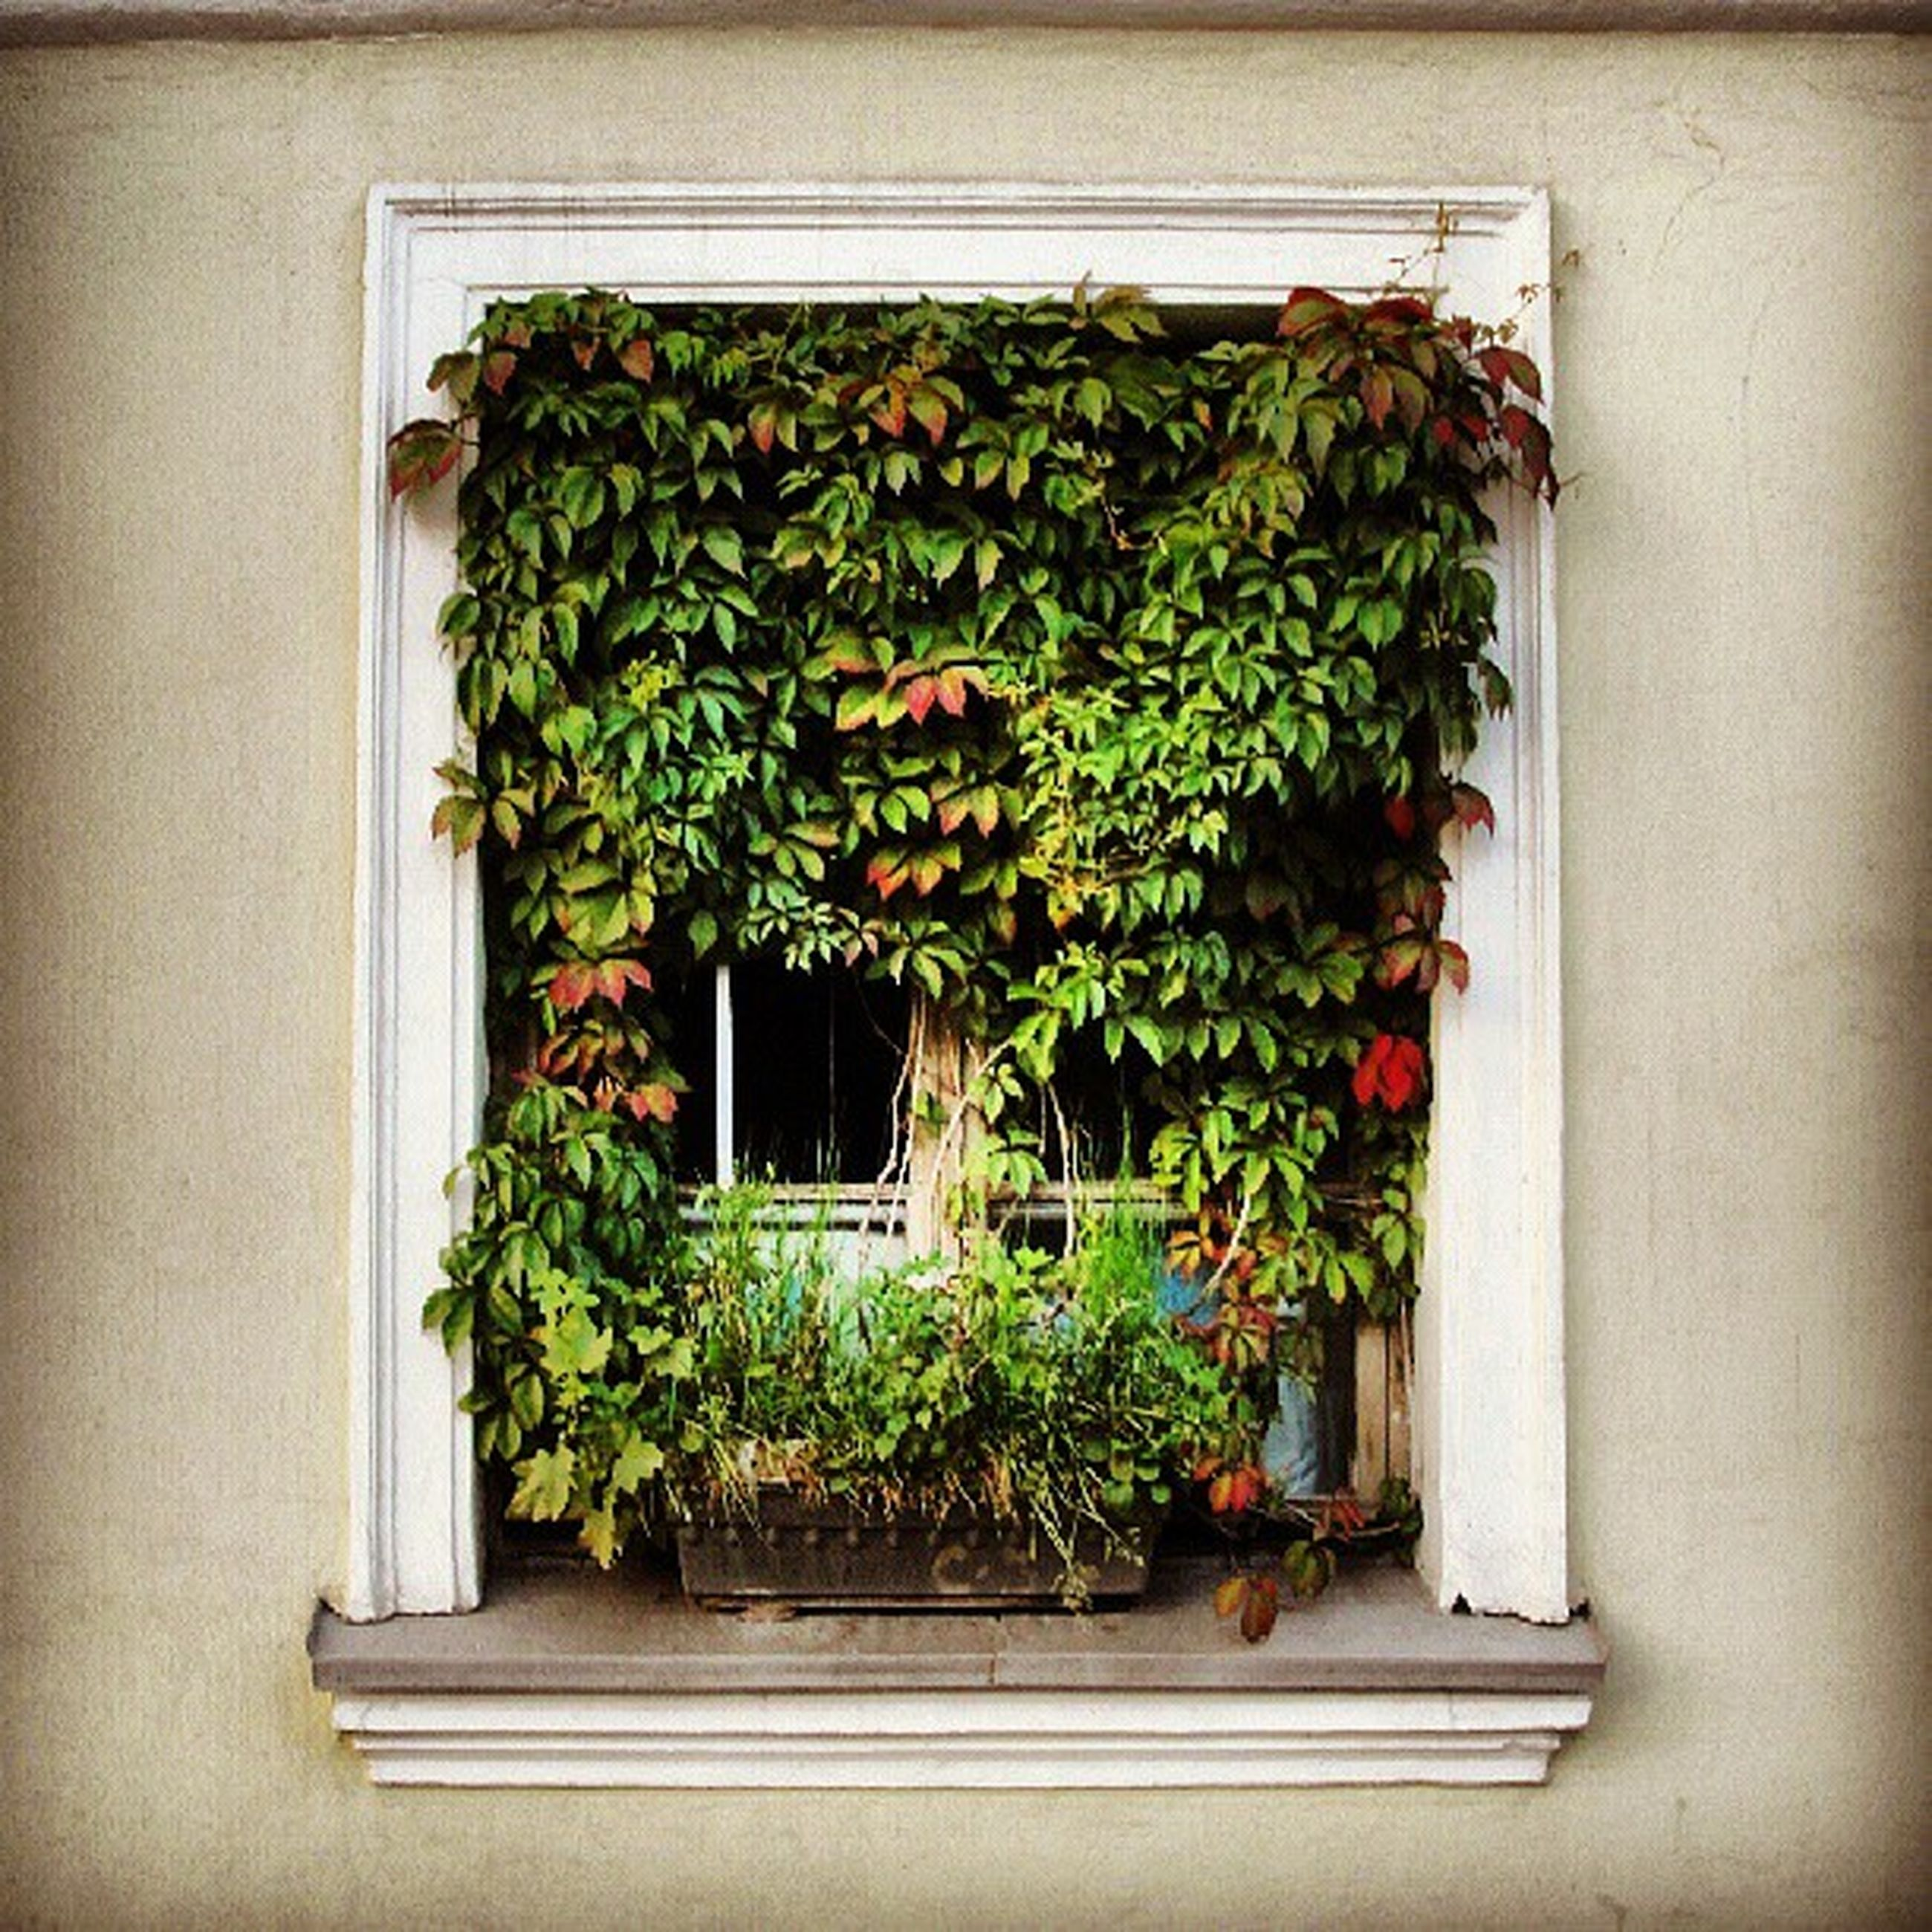 potted plant, plant, growth, green color, house, built structure, window, leaf, architecture, flower pot, building exterior, freshness, nature, pot plant, green, no people, indoors, flower, day, growing